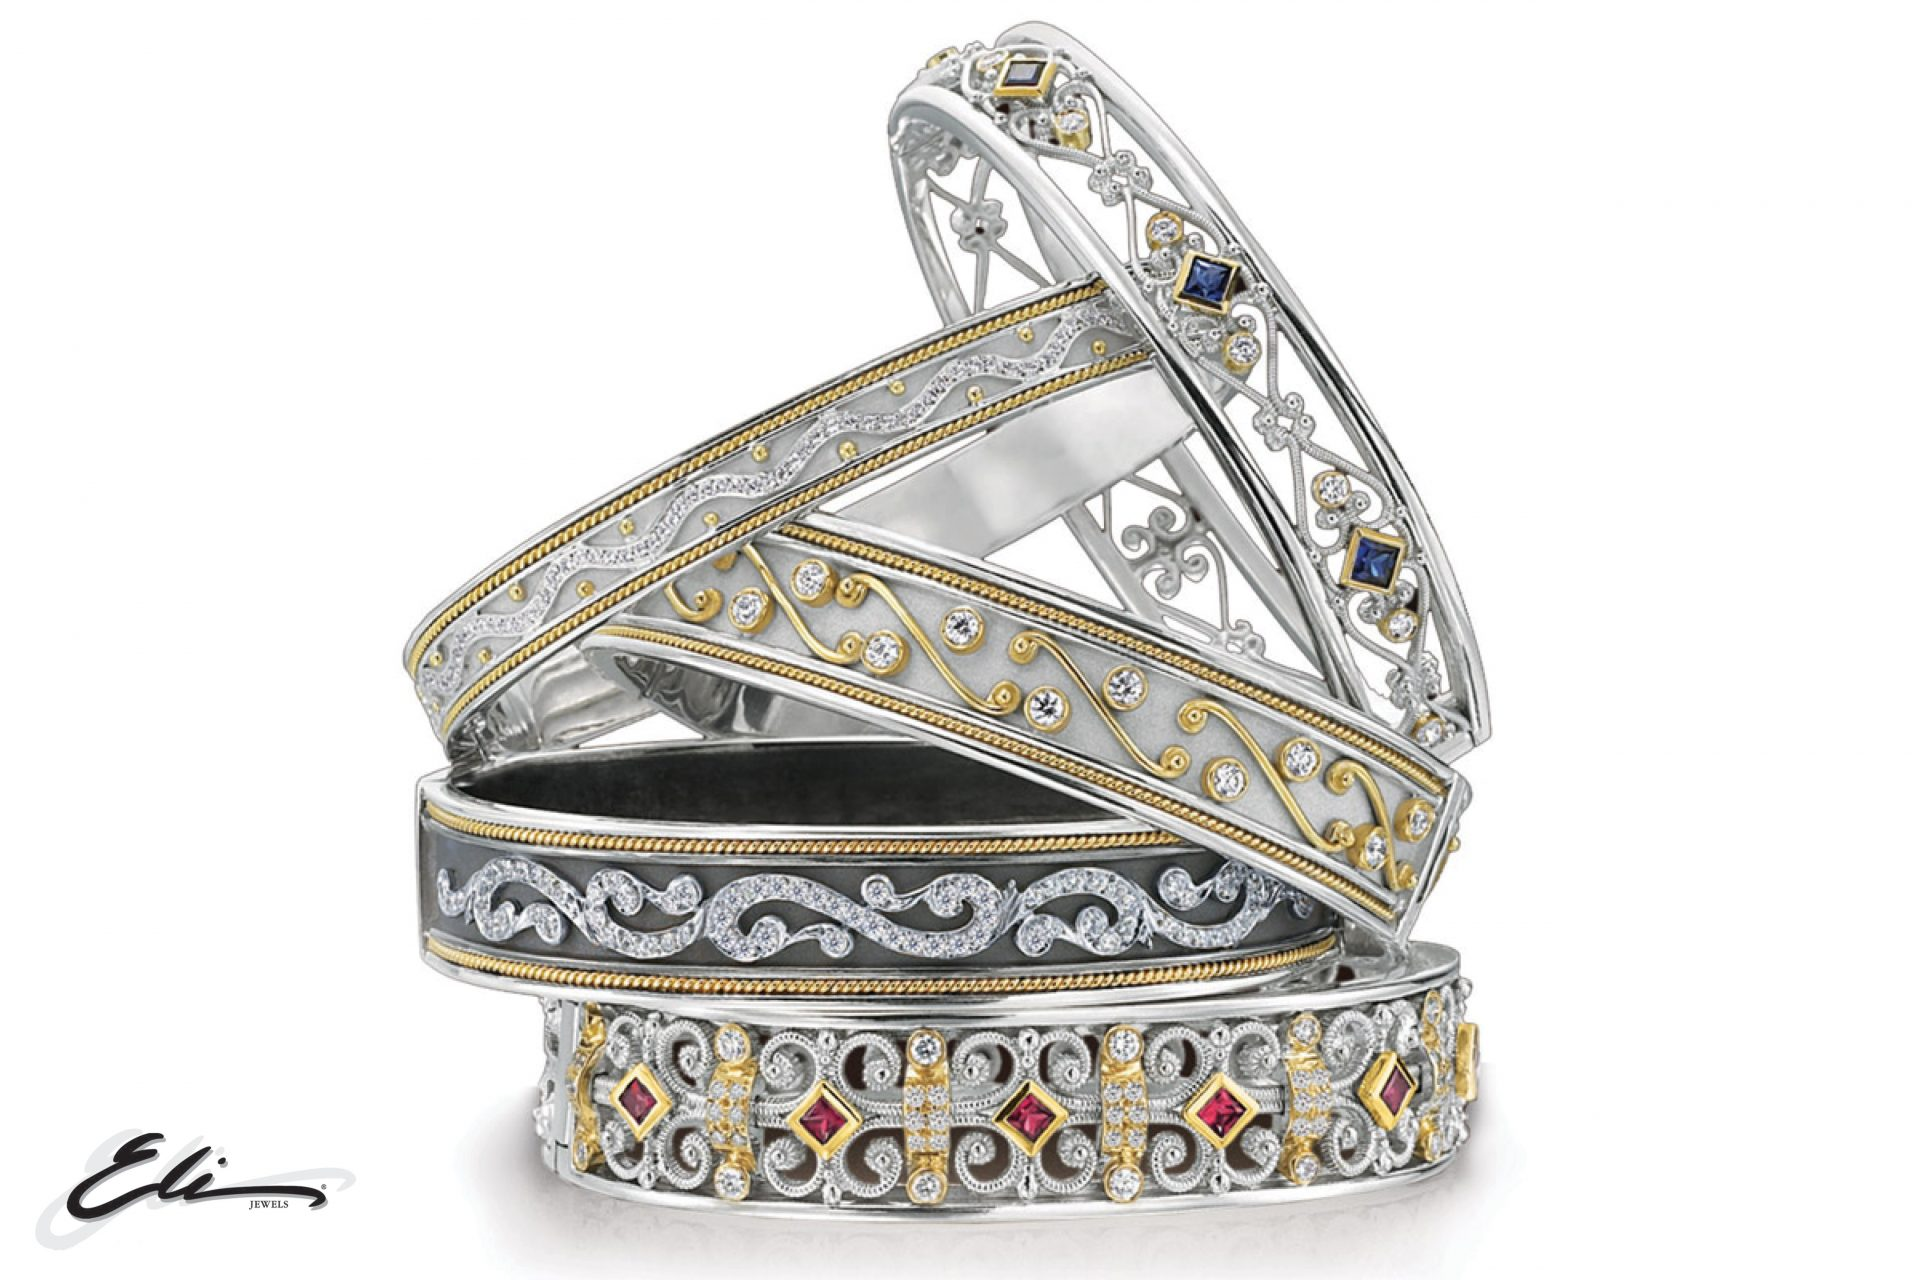 DePriest Robbins Alabama Fine Jewelry Designer Jewelry Eli Jewels